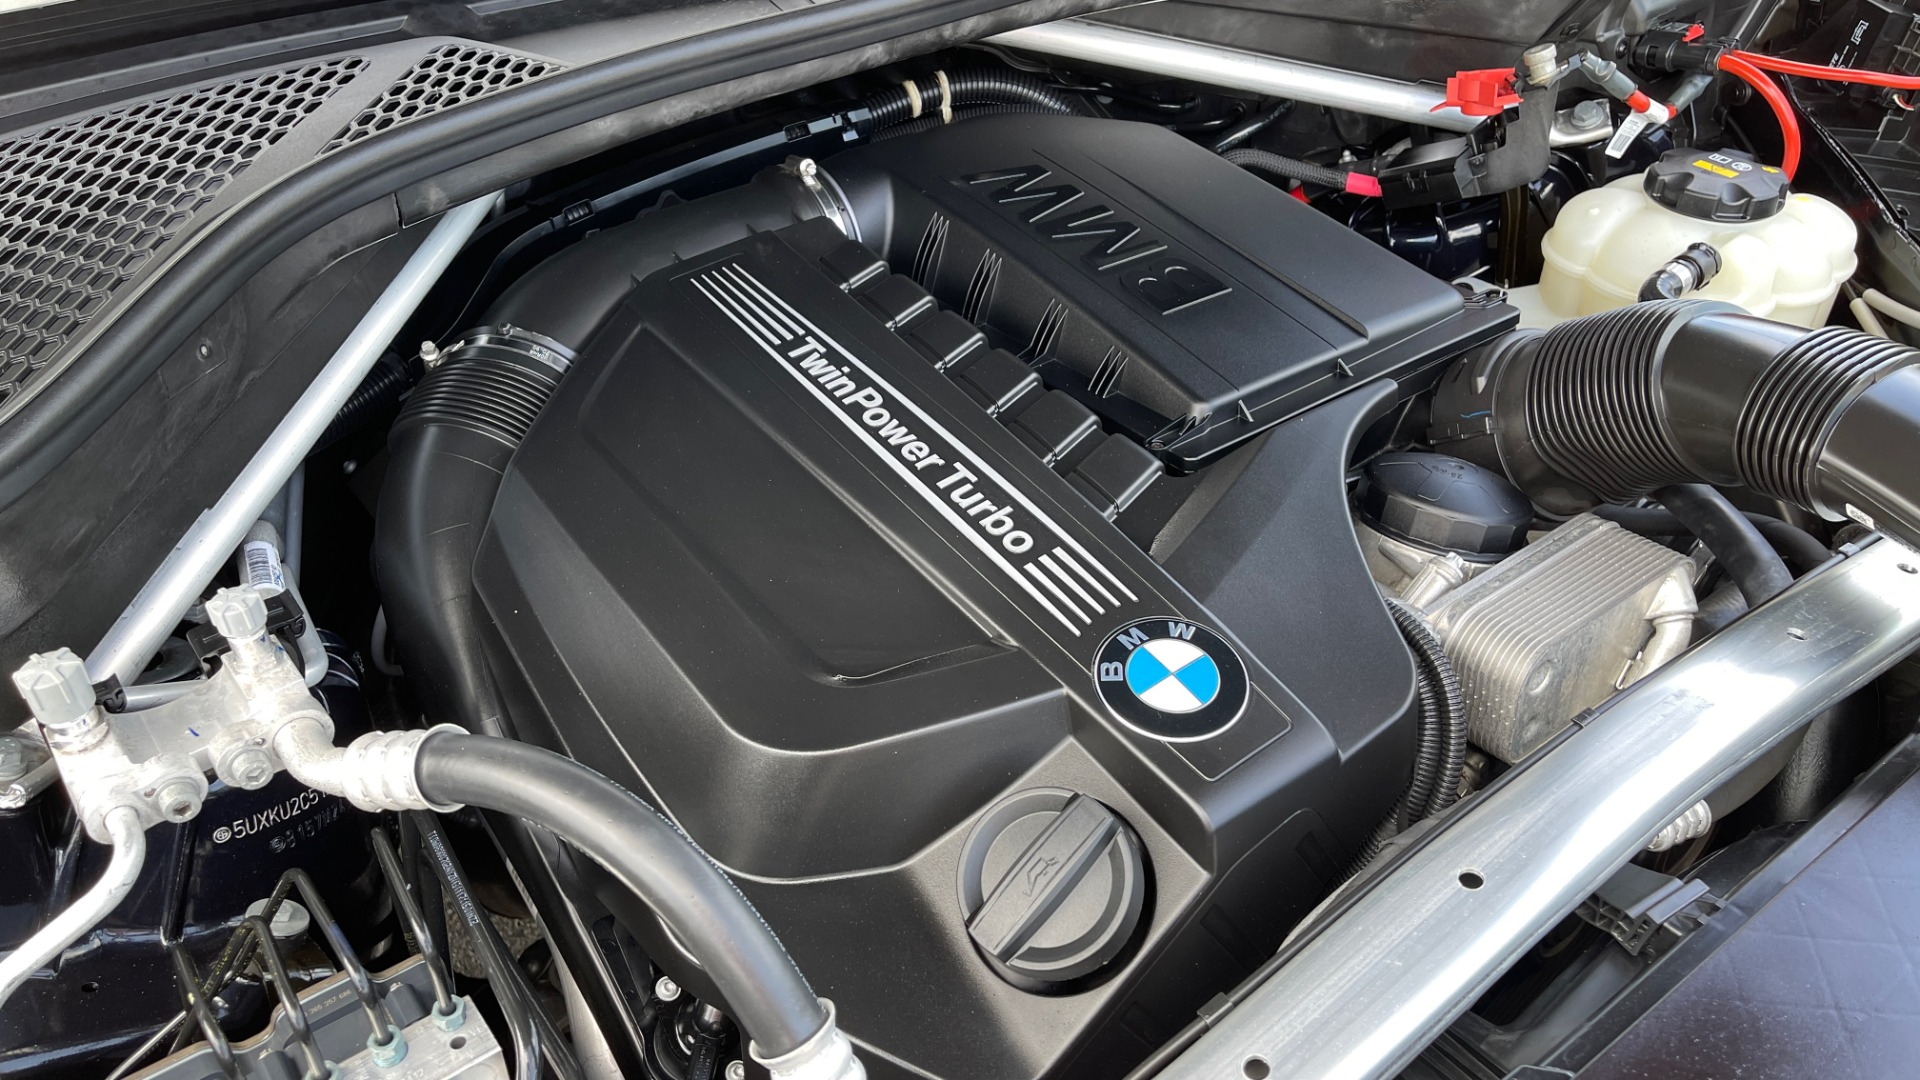 Used 2018 BMW X6 XDRIVE35I M-SPORT / DRVR ASST / PRK ASST / H/K SND / APPLE / WIRELESS CHARG for sale $51,995 at Formula Imports in Charlotte NC 28227 11